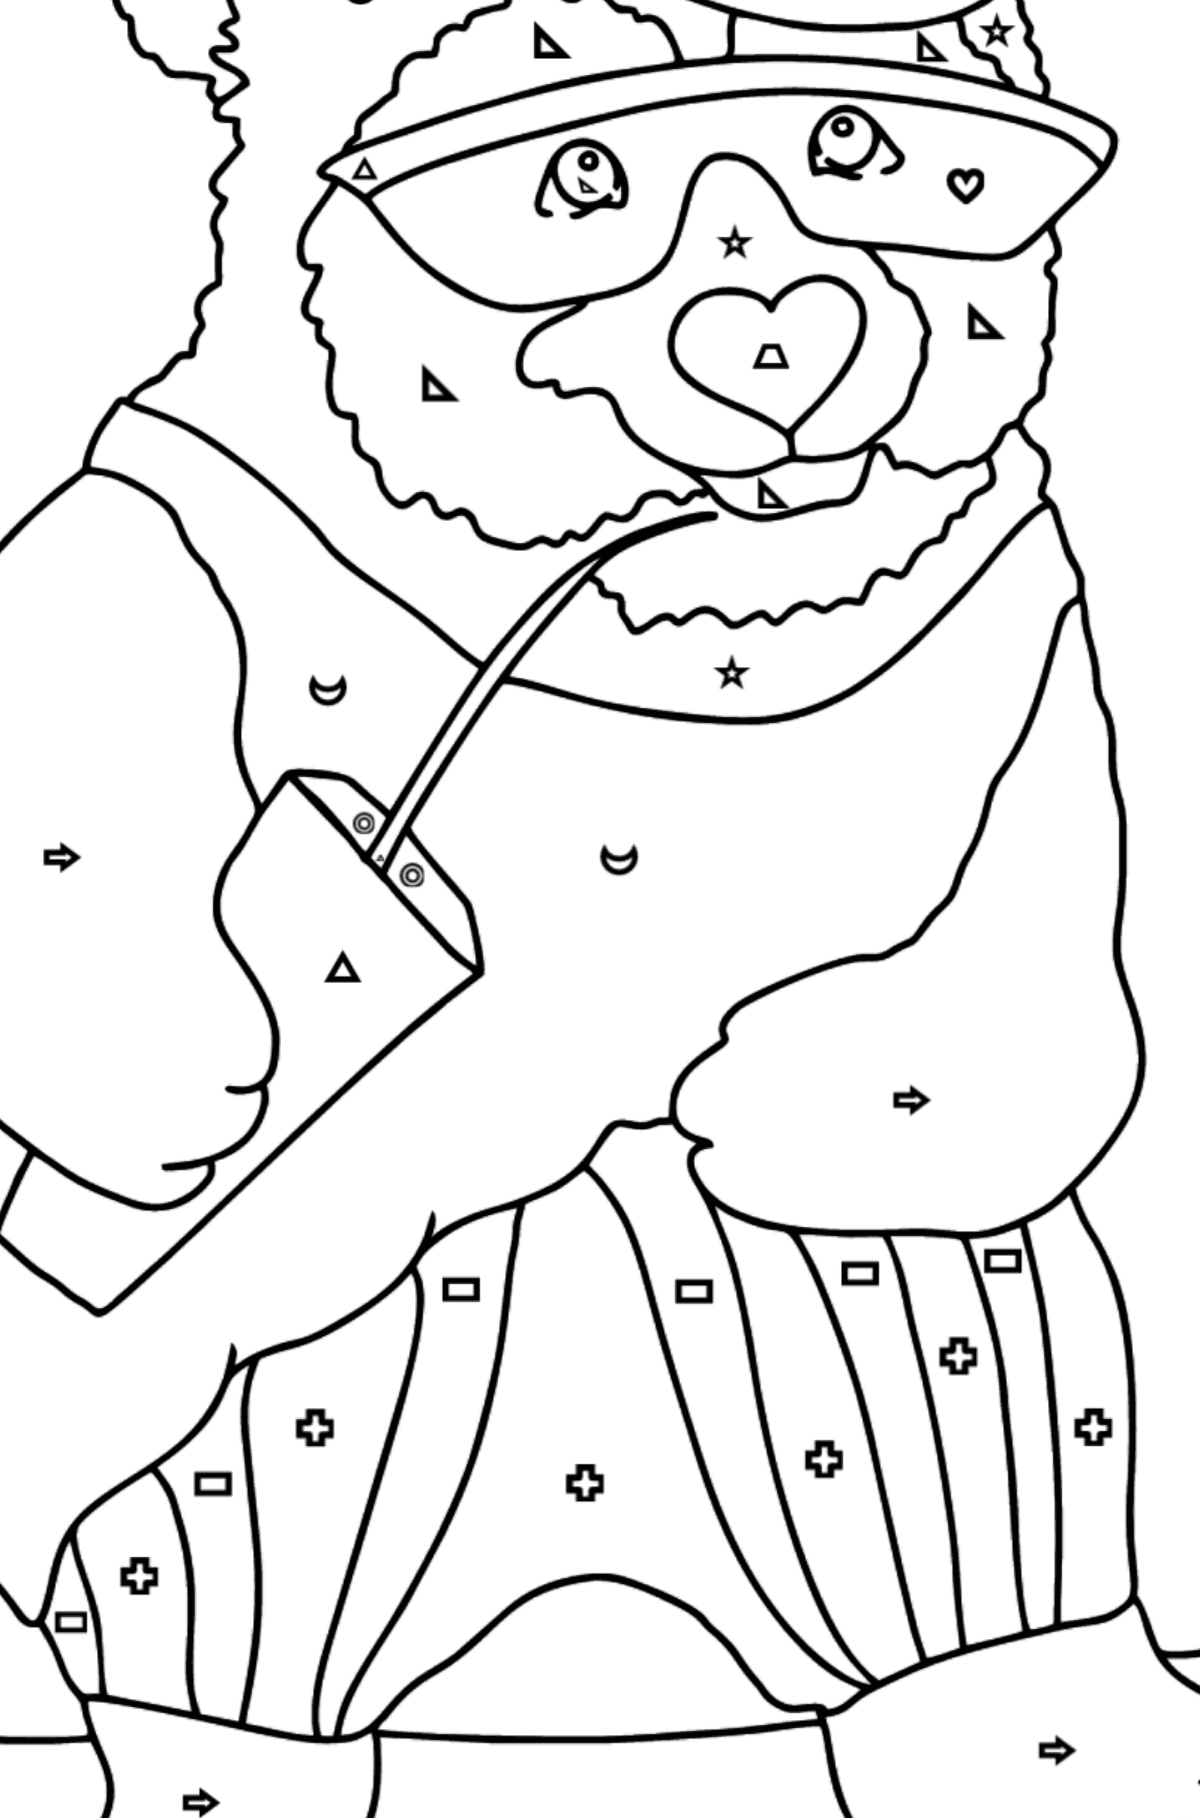 Coloring Page - A Panda in Sunglasses - Coloring by Geometric Shapes for Kids